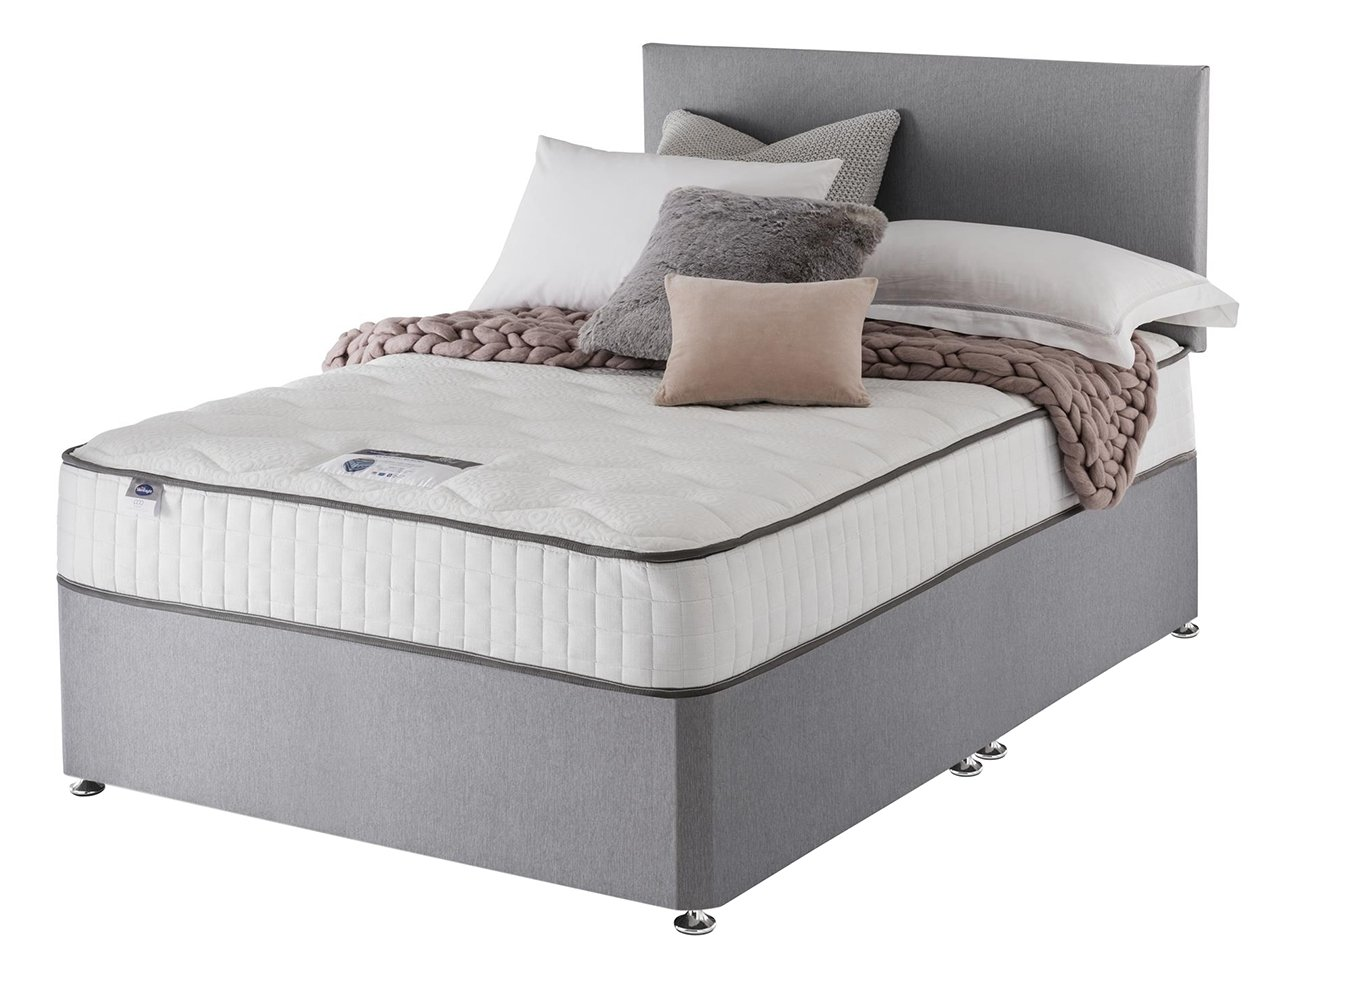 Silentnight - Middleton Pocket Memory - Double - Divan Bed at Argos